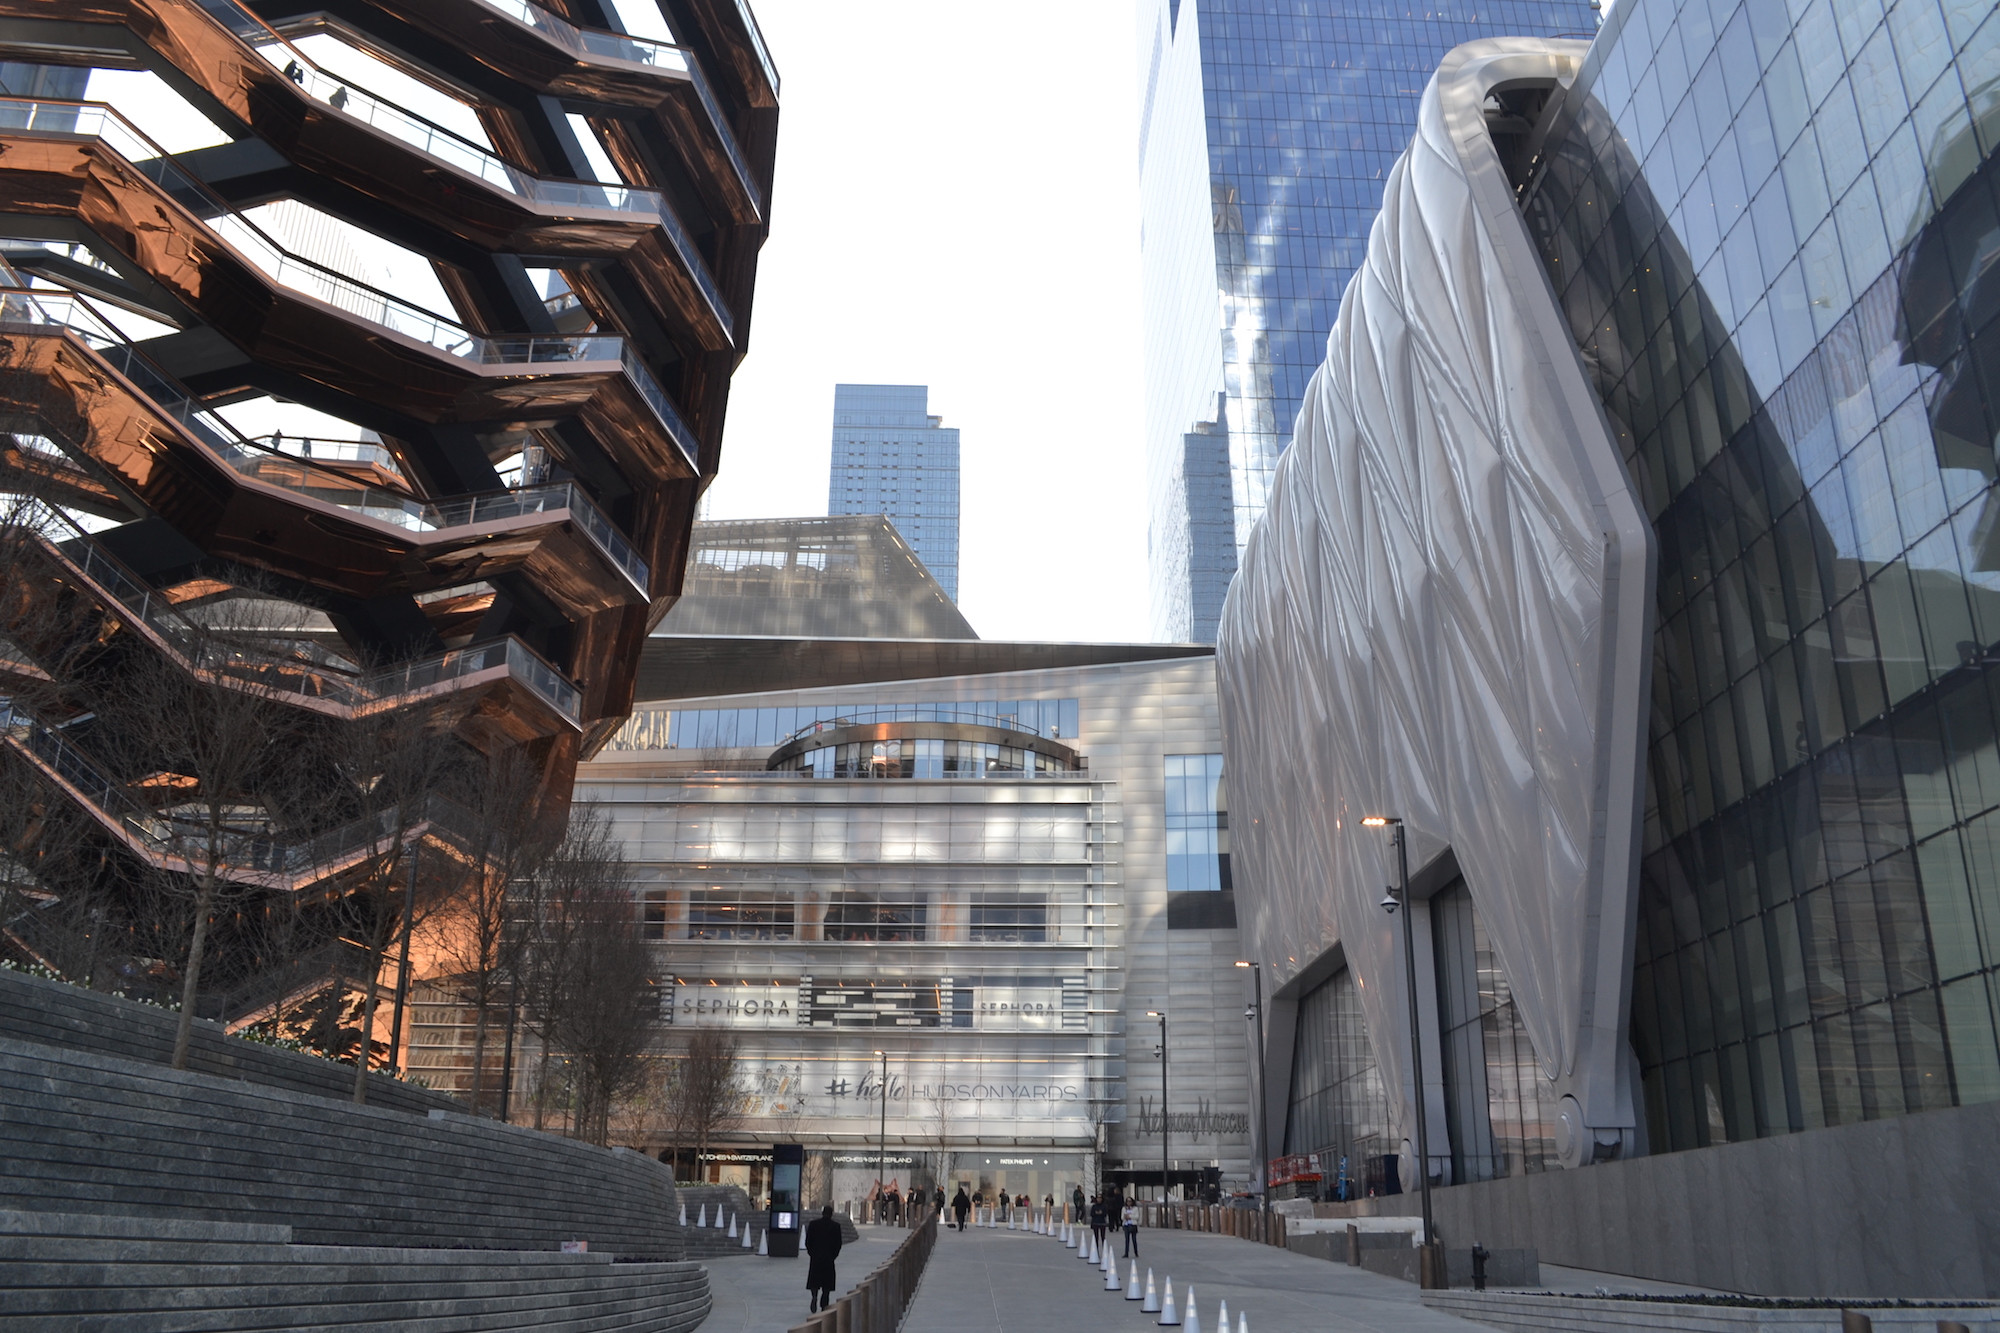 Time Magazine Recognizes 2019's Best Architectural Buildings (5) architectural building Architectural Buildings That Caught Our Eyes In 2019 Time Magazine Recognizes 2019s Best Architectural Buildings 1